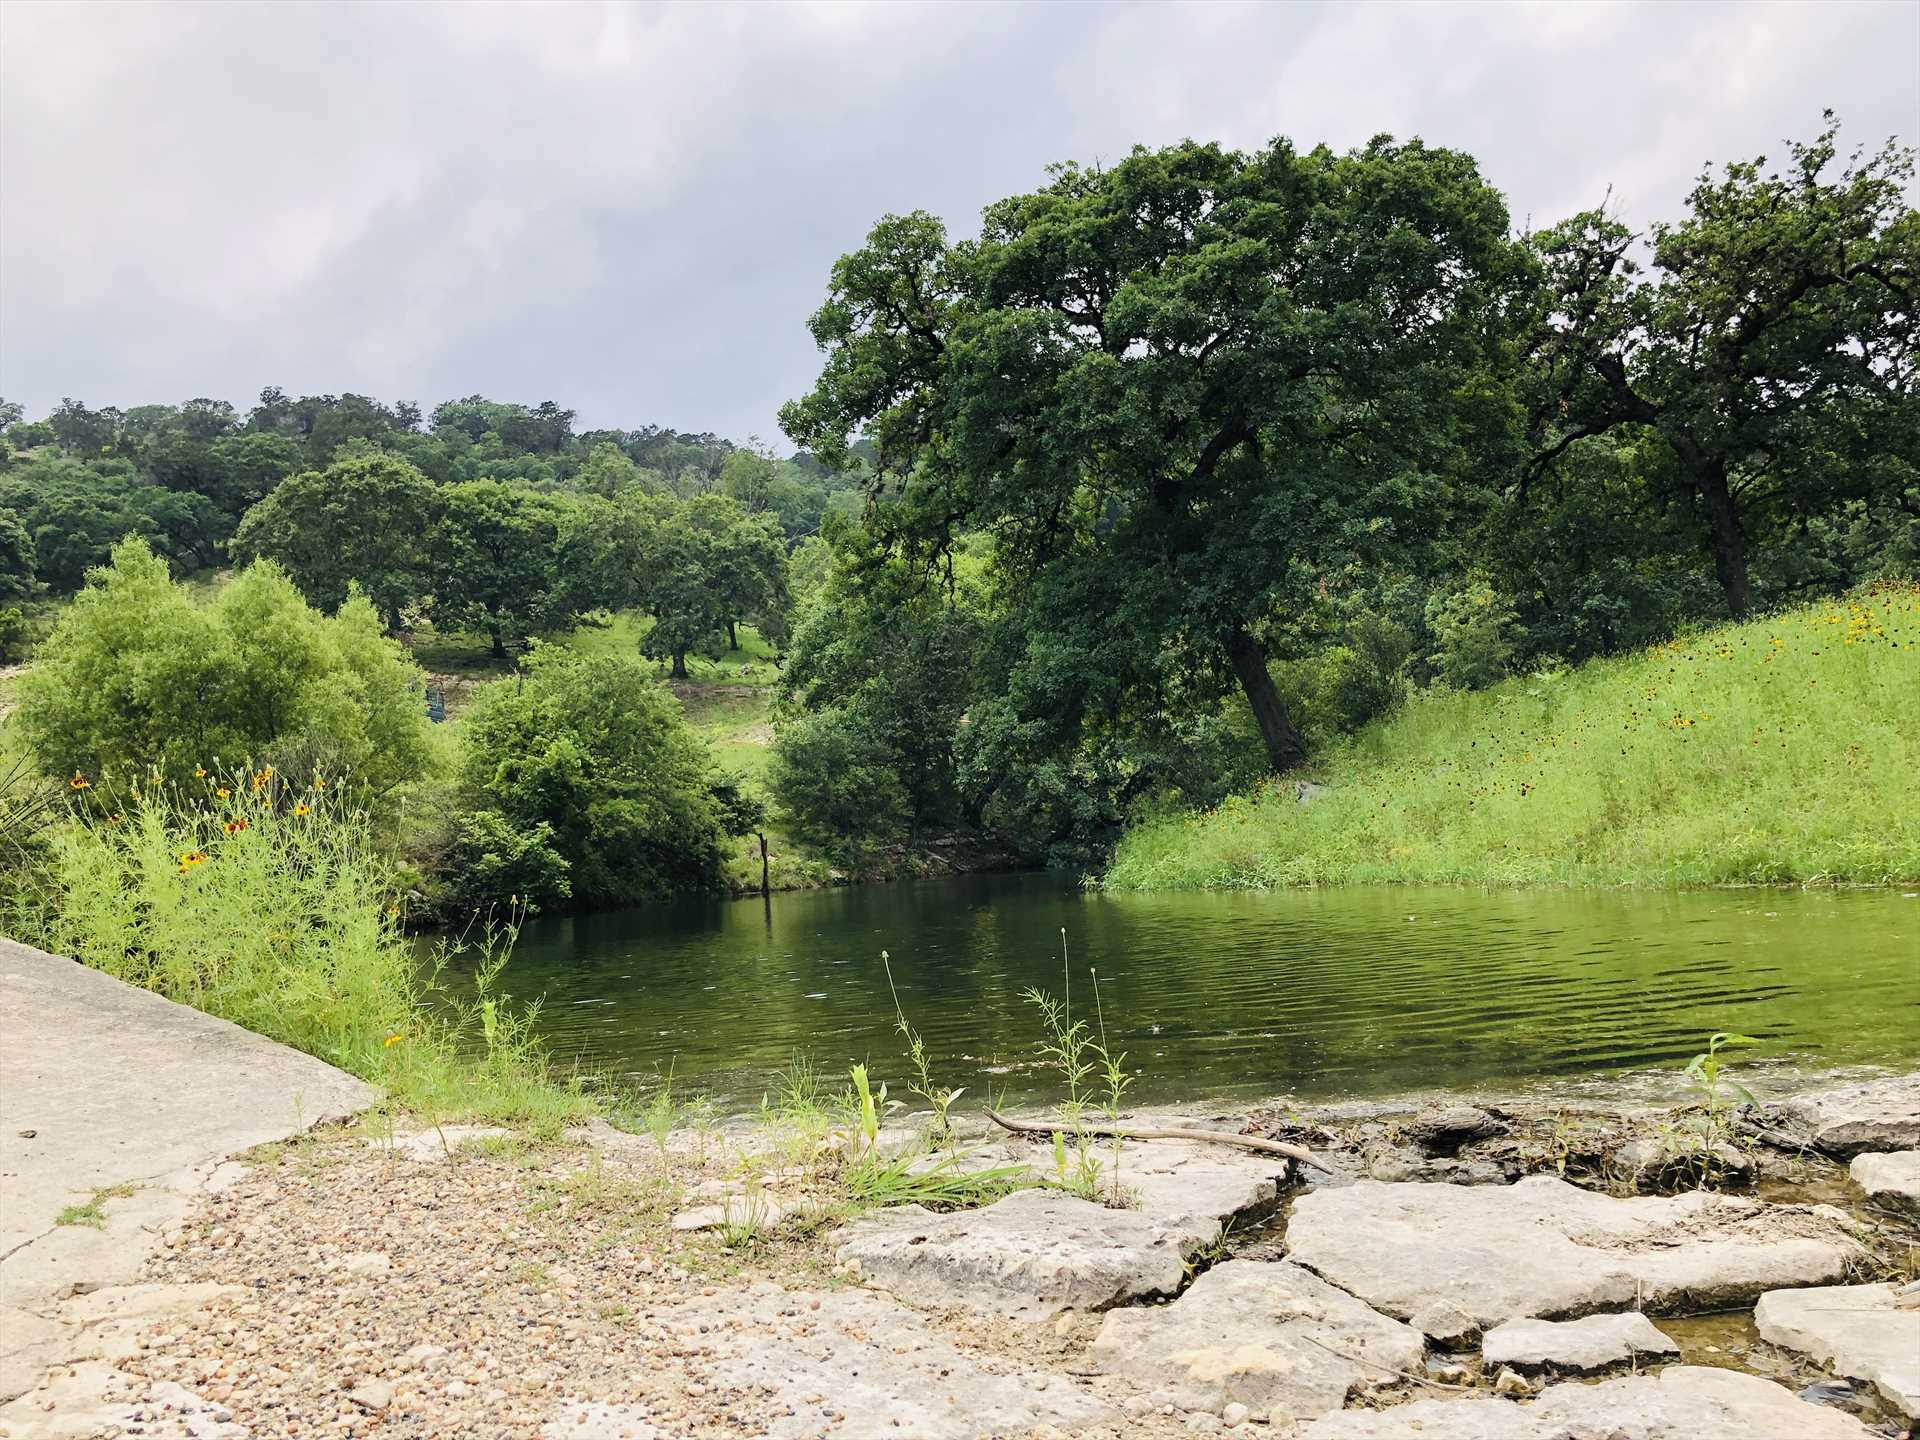 If fishing's your passion, please check with us before booking, since the creek here is seasonal.